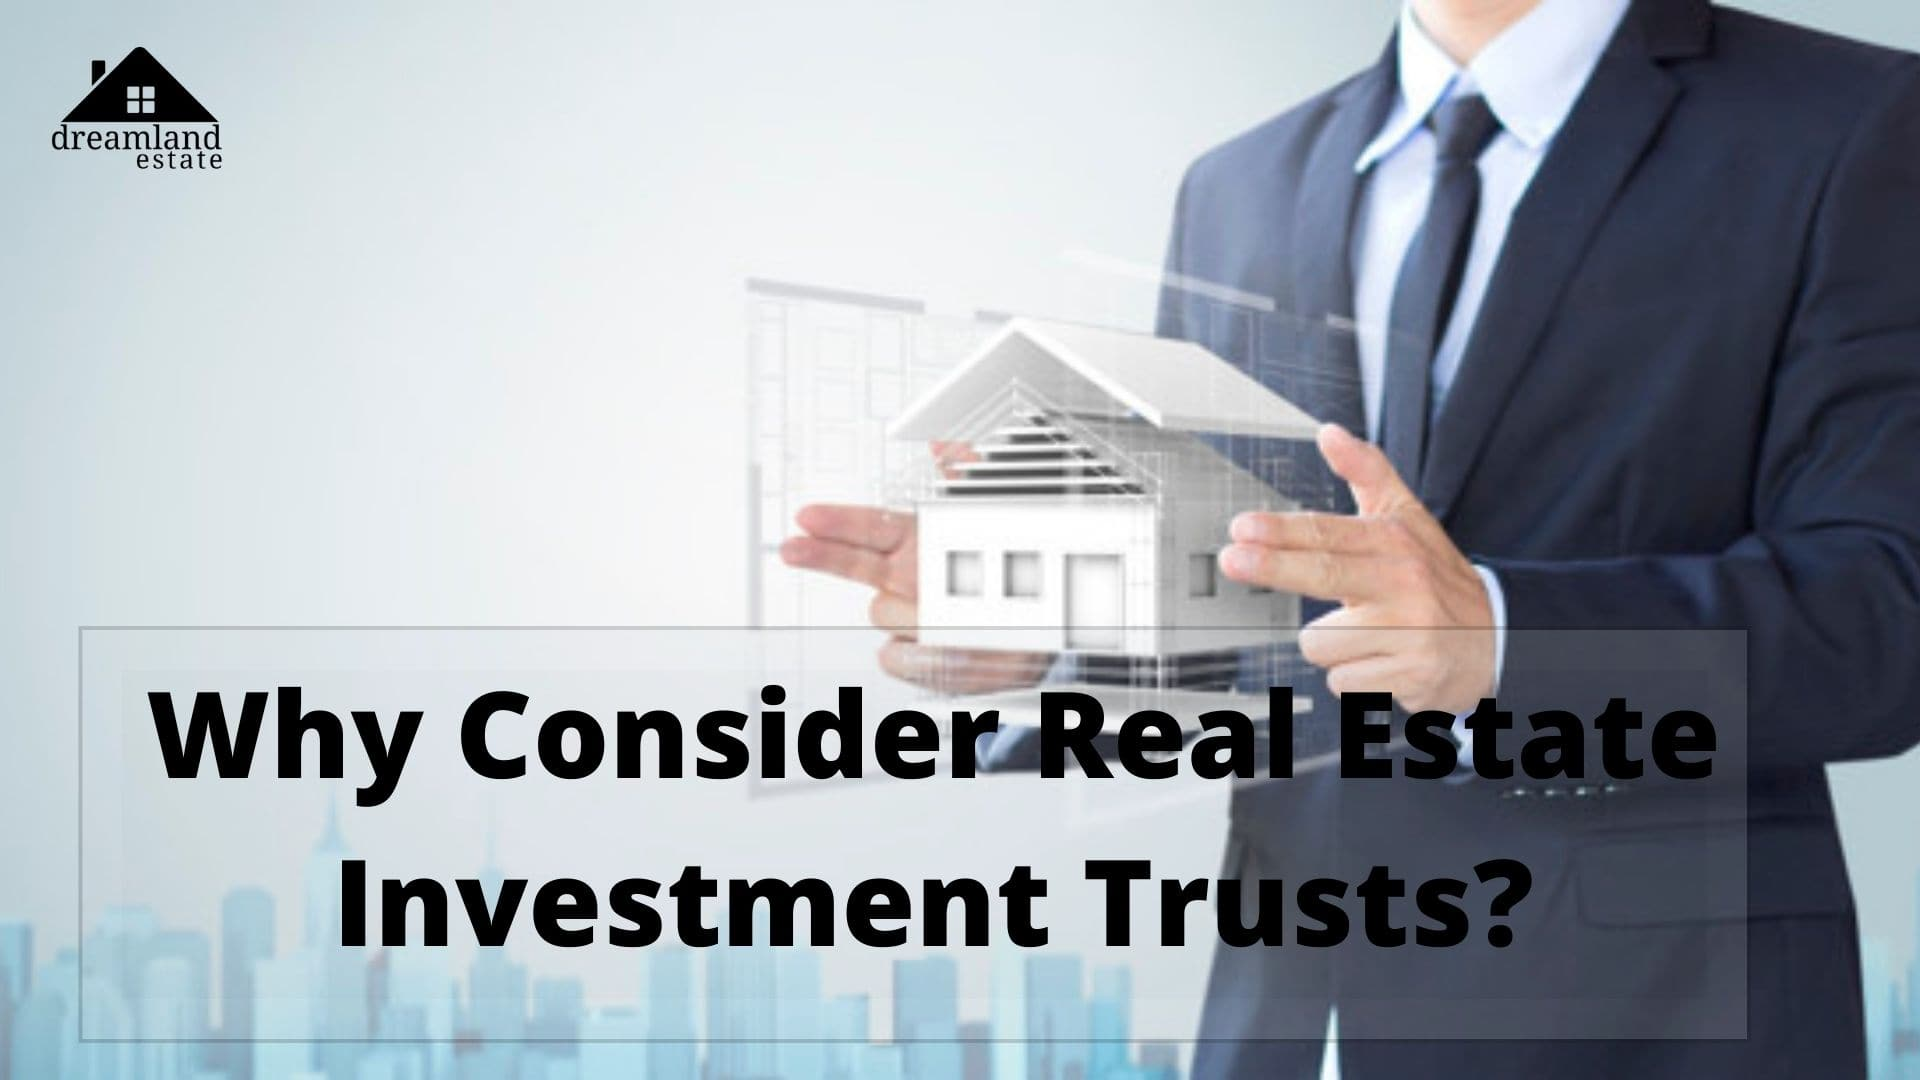 Why Consider Real Estate Investment Trusts